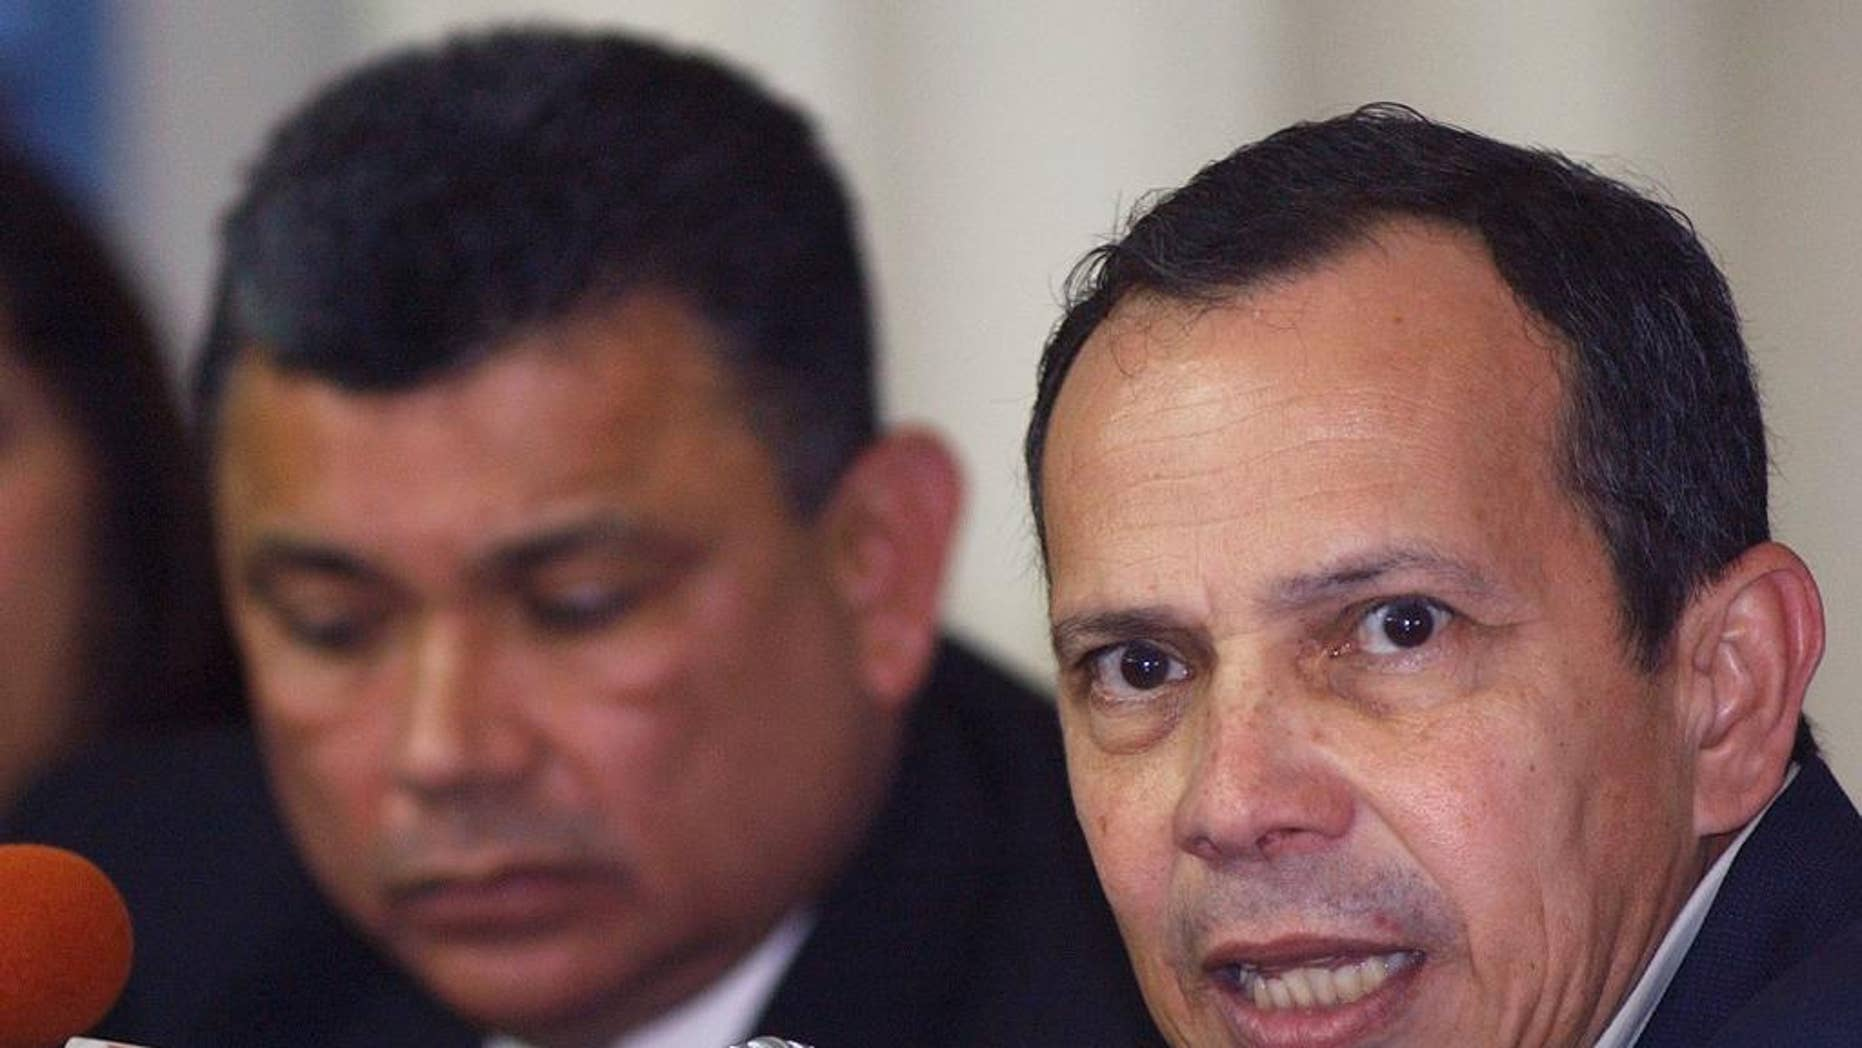 FILE - In this Jan. 9, 2005 file photo, National Assembly President Rene Nunez talks during a press conference in Managua, Nicaragua. Nicaragua's congress has decided that Nunez, who died on Sept. 10, 2016, will remain as the body's titular head through the end of the legislative session in January. The unprecedented move is intended to honor Nunez, who was president of the legislative assembly for nine years until his death, at age 69. The assembly's vice president will take on his administrative responsibilities. (AP Photo/Esteban Felix)